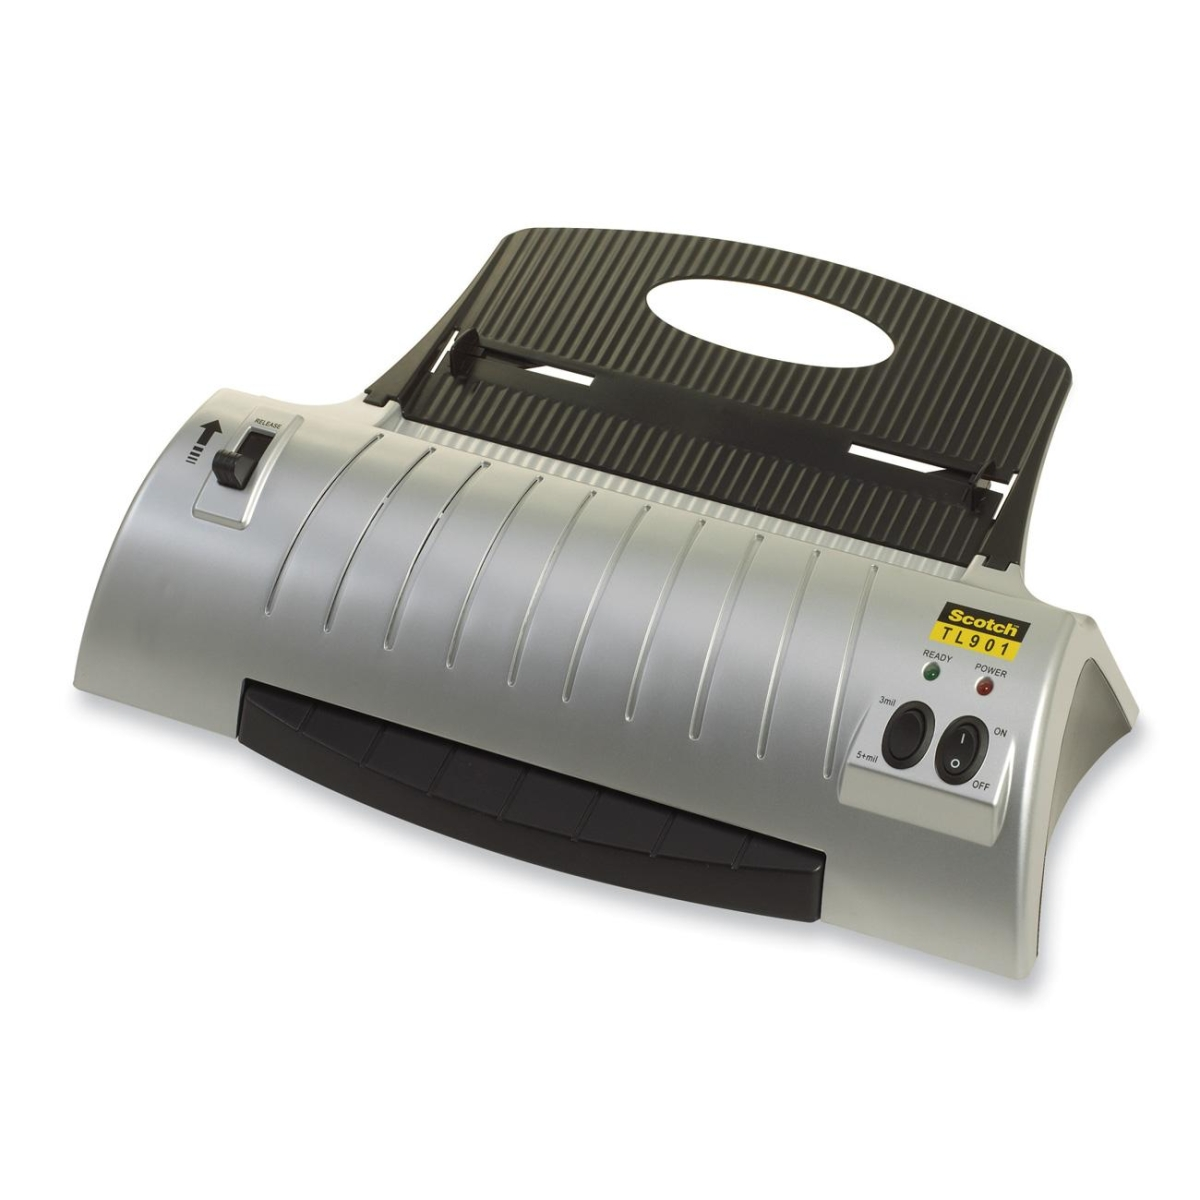 SCOTCH THERMAL LAMINATOR COMBO PACK INCLUDES 20 LAMINATING POUCHES 8.9 INCHES X